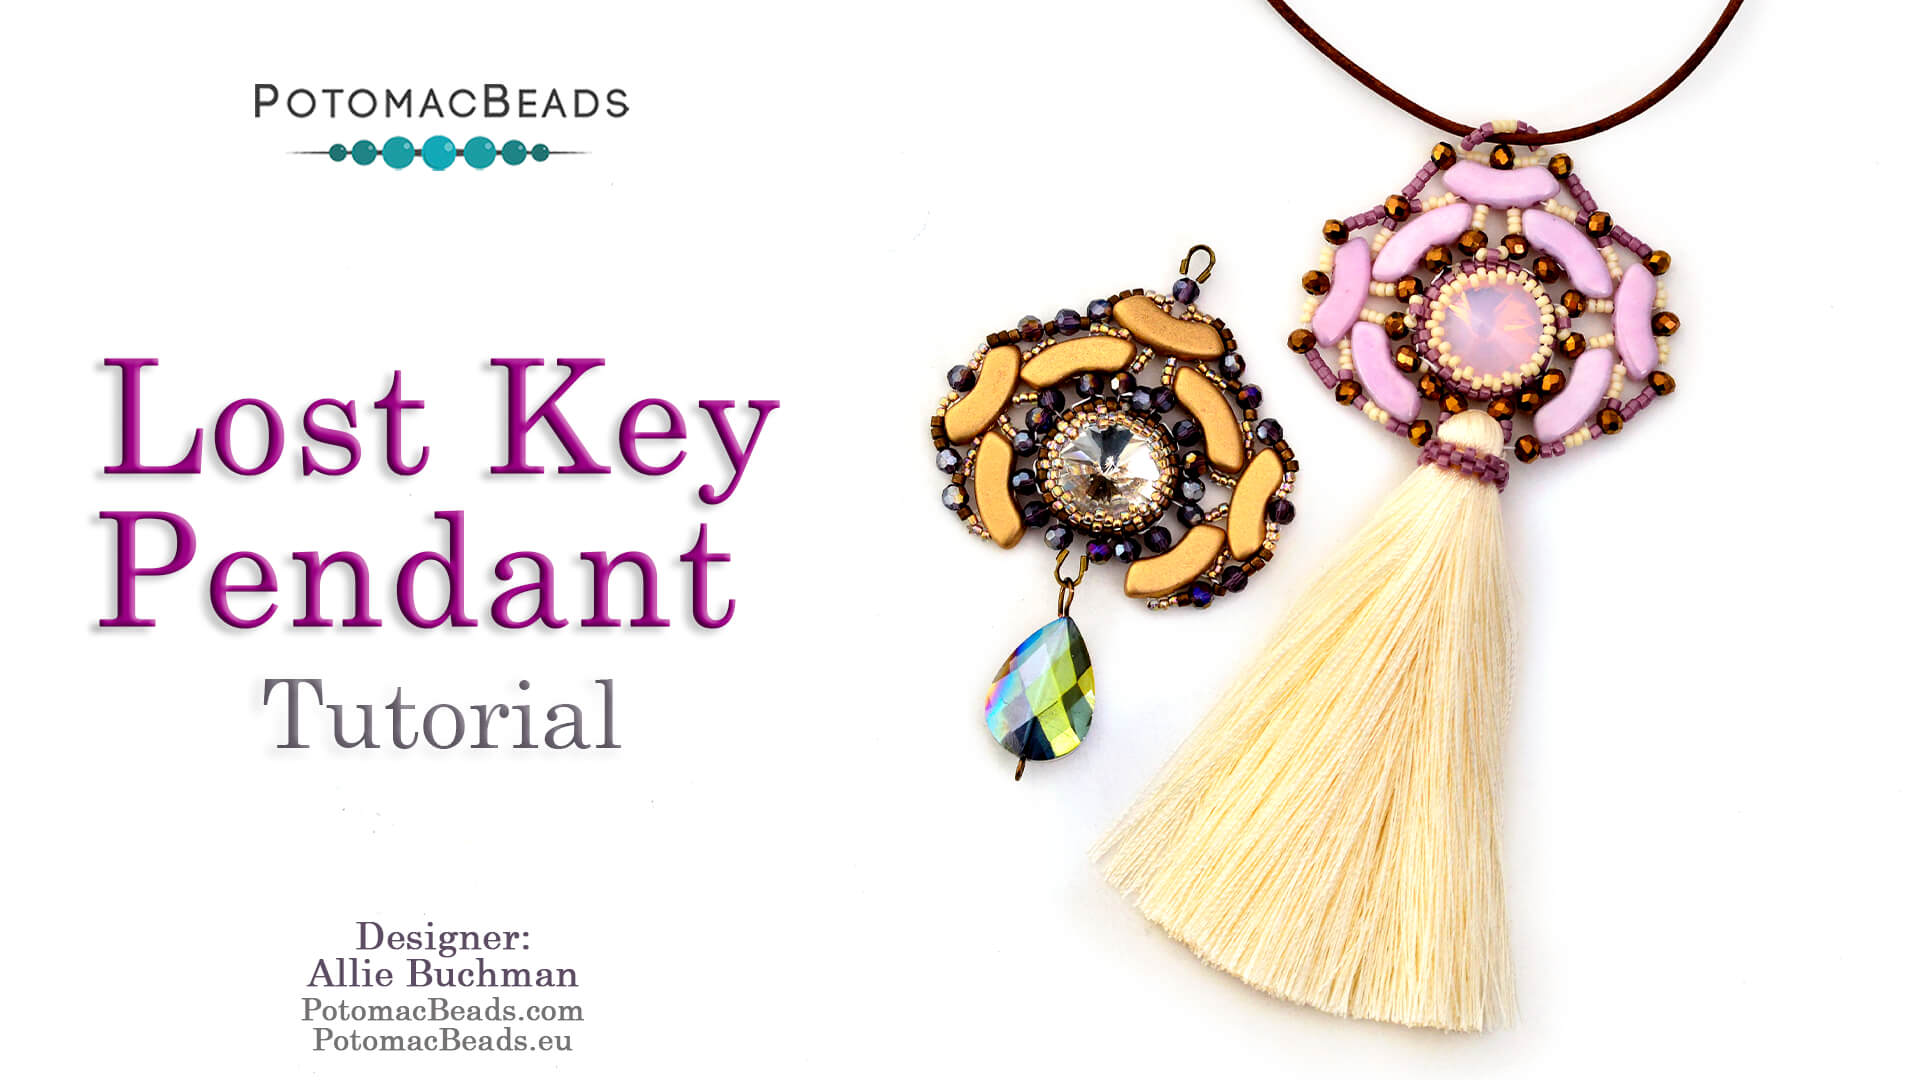 How to Bead / Videos Sorted by Beads / QuadBow & PieDuo Bead Videos / Lost Key Pendant Tutorial